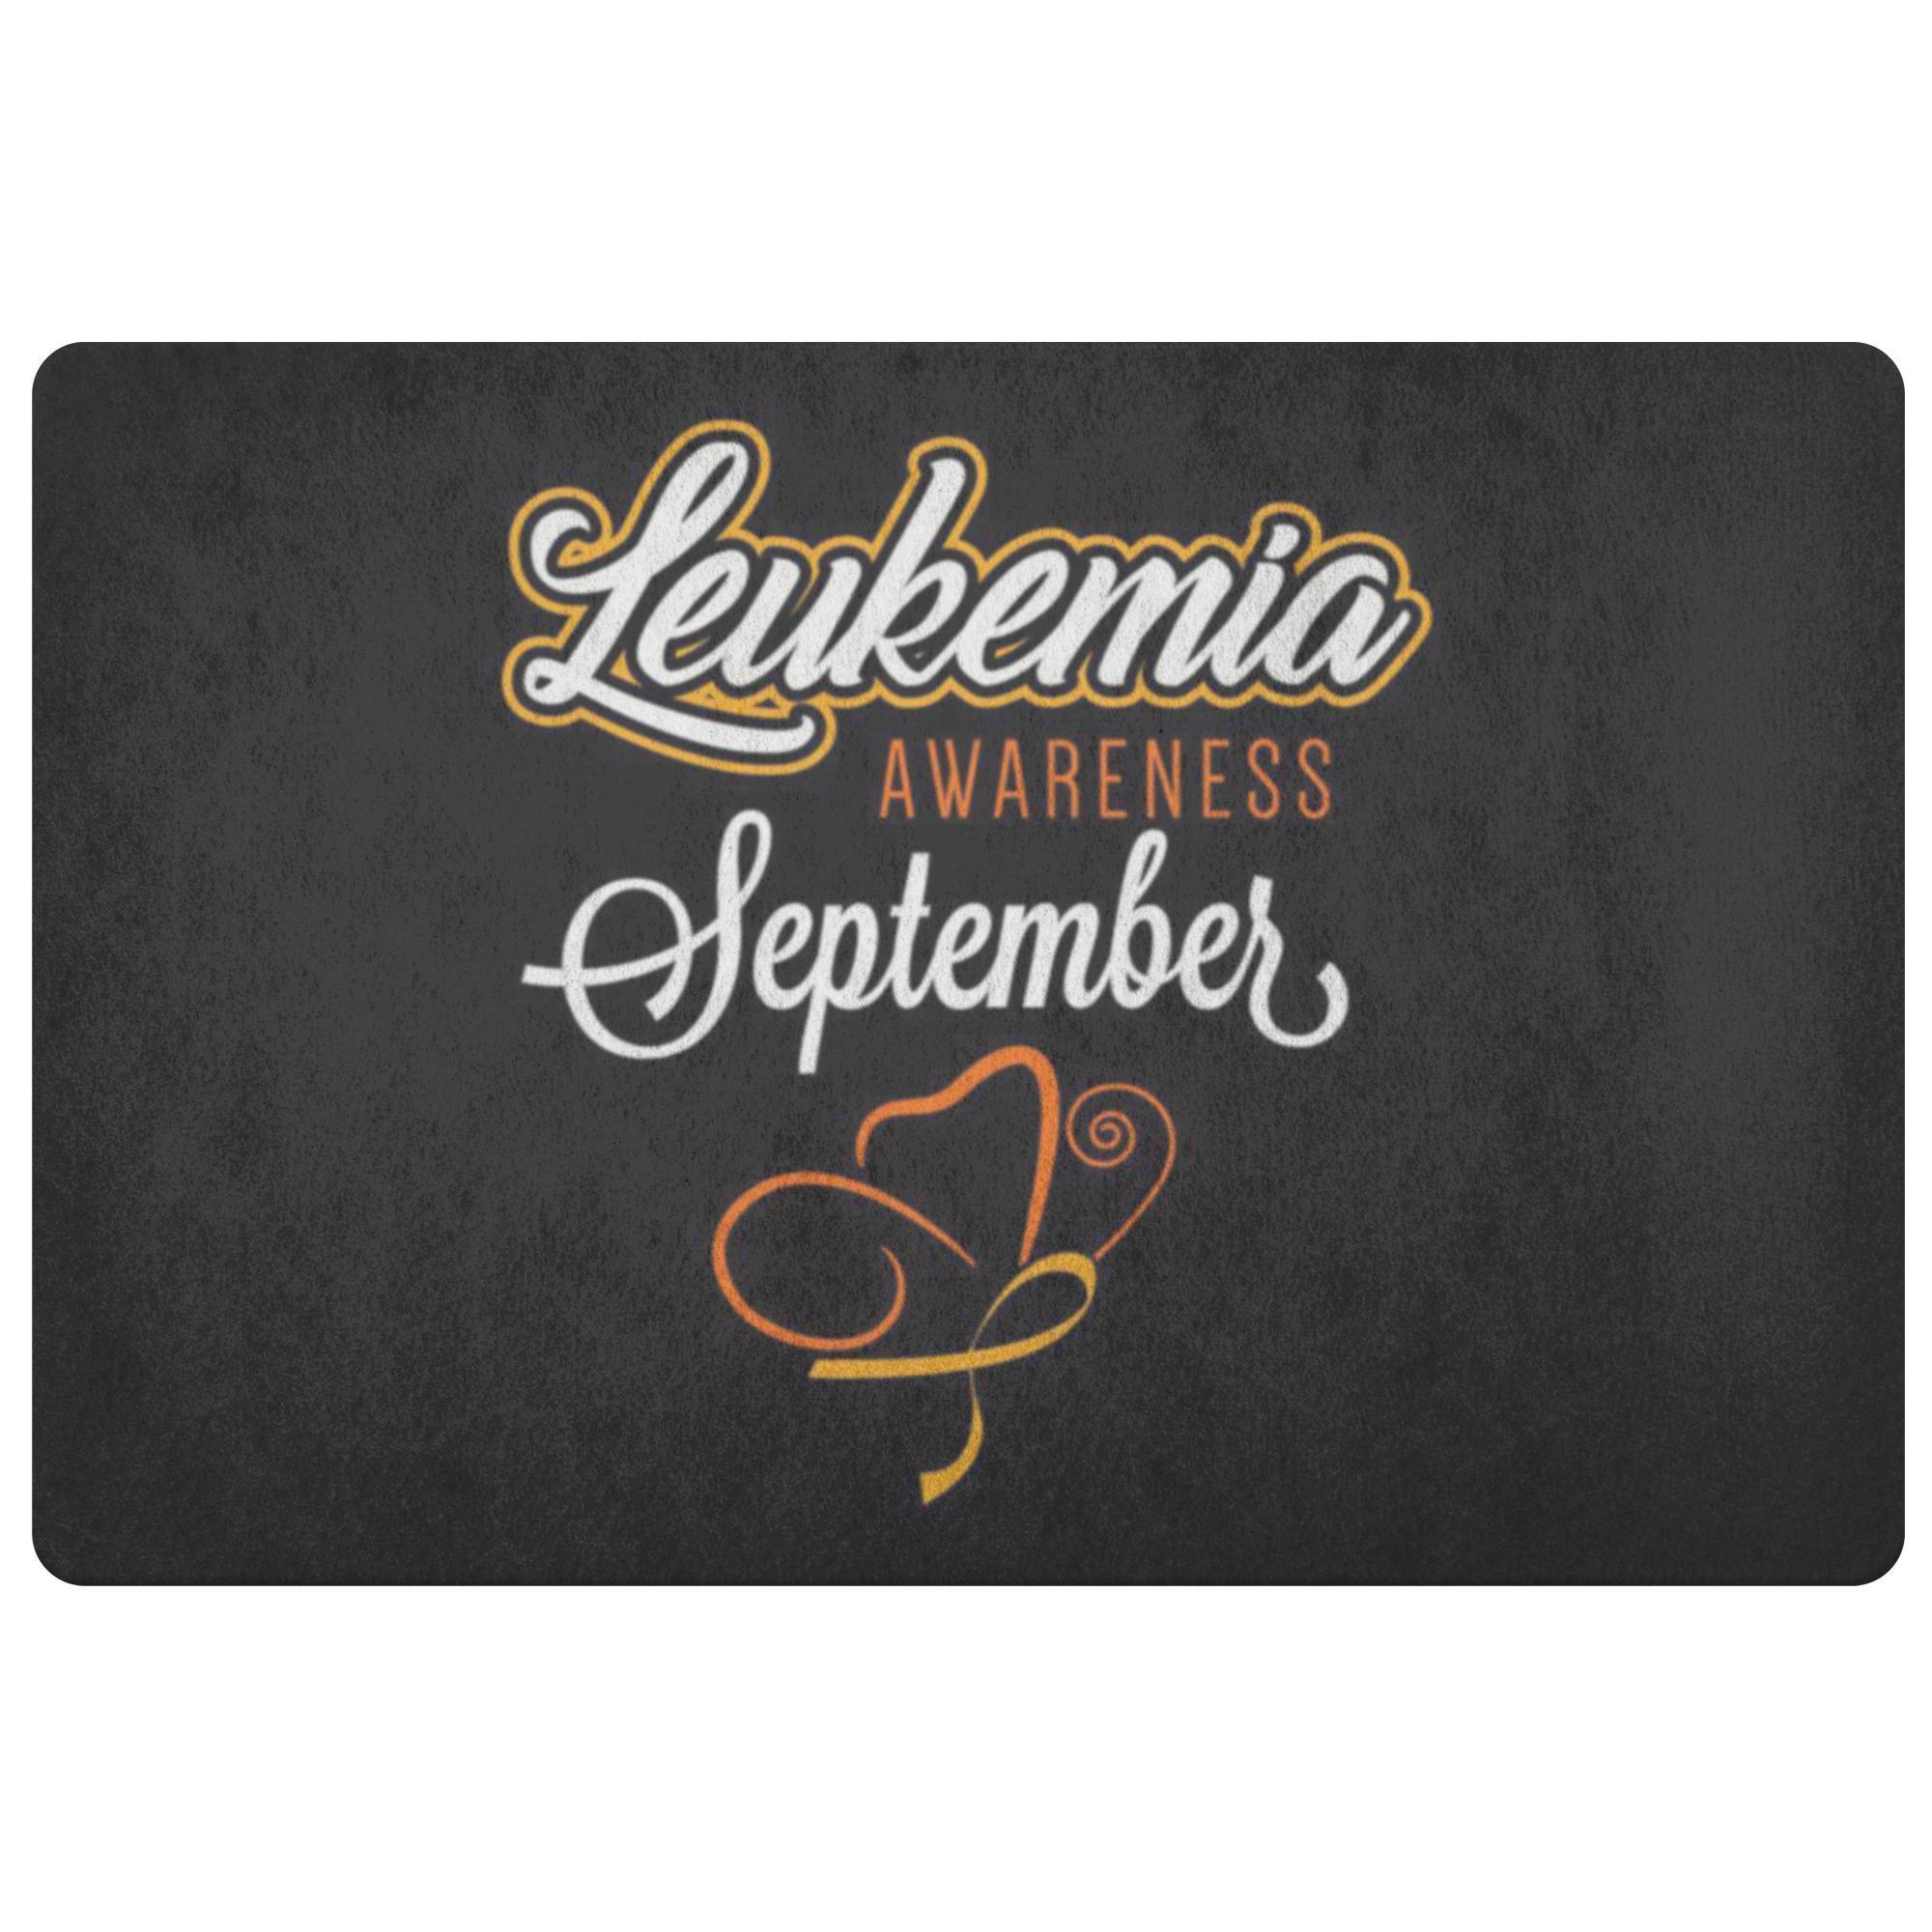 Leukemia Cancer Awareness September Orange Ribbon 18X26 Thin Indoor Door Mat Rug-Doormat-Black-JoyHip.Com